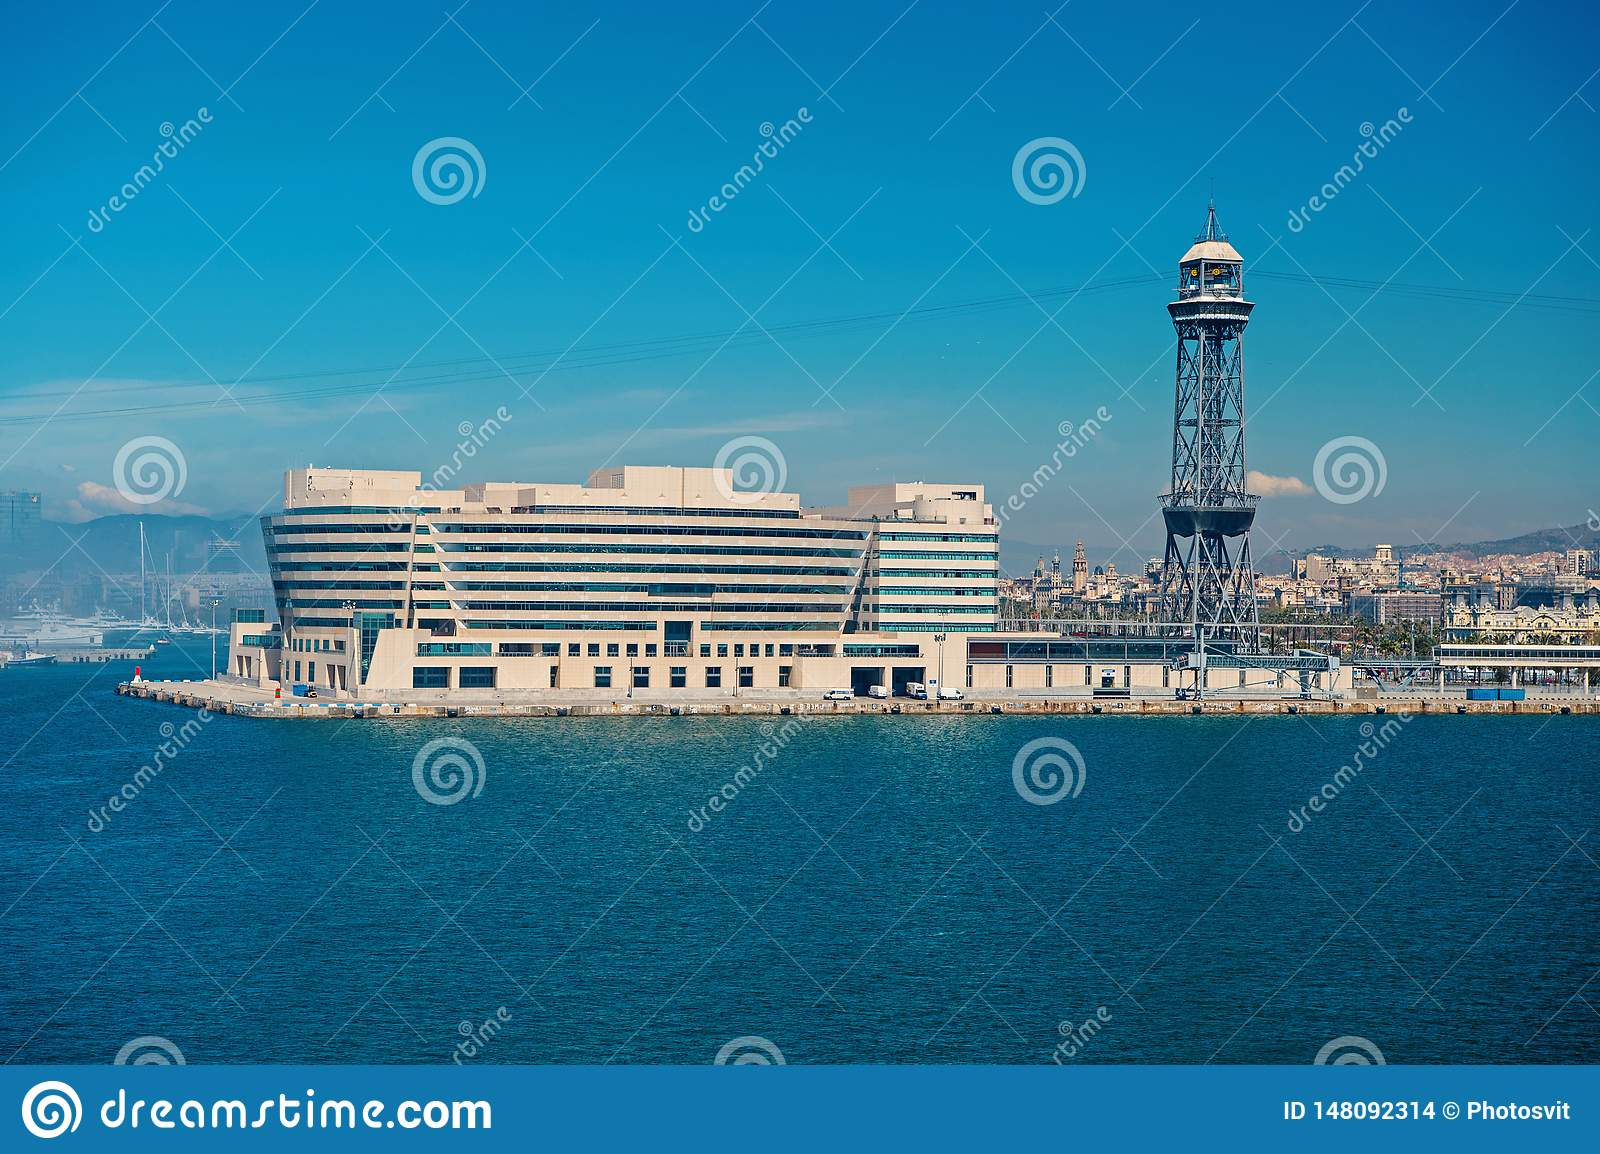 Barcelona, Spain - March 30, 2016: World Trade Center building and tower on blue sky. Business park. Trade and commerce